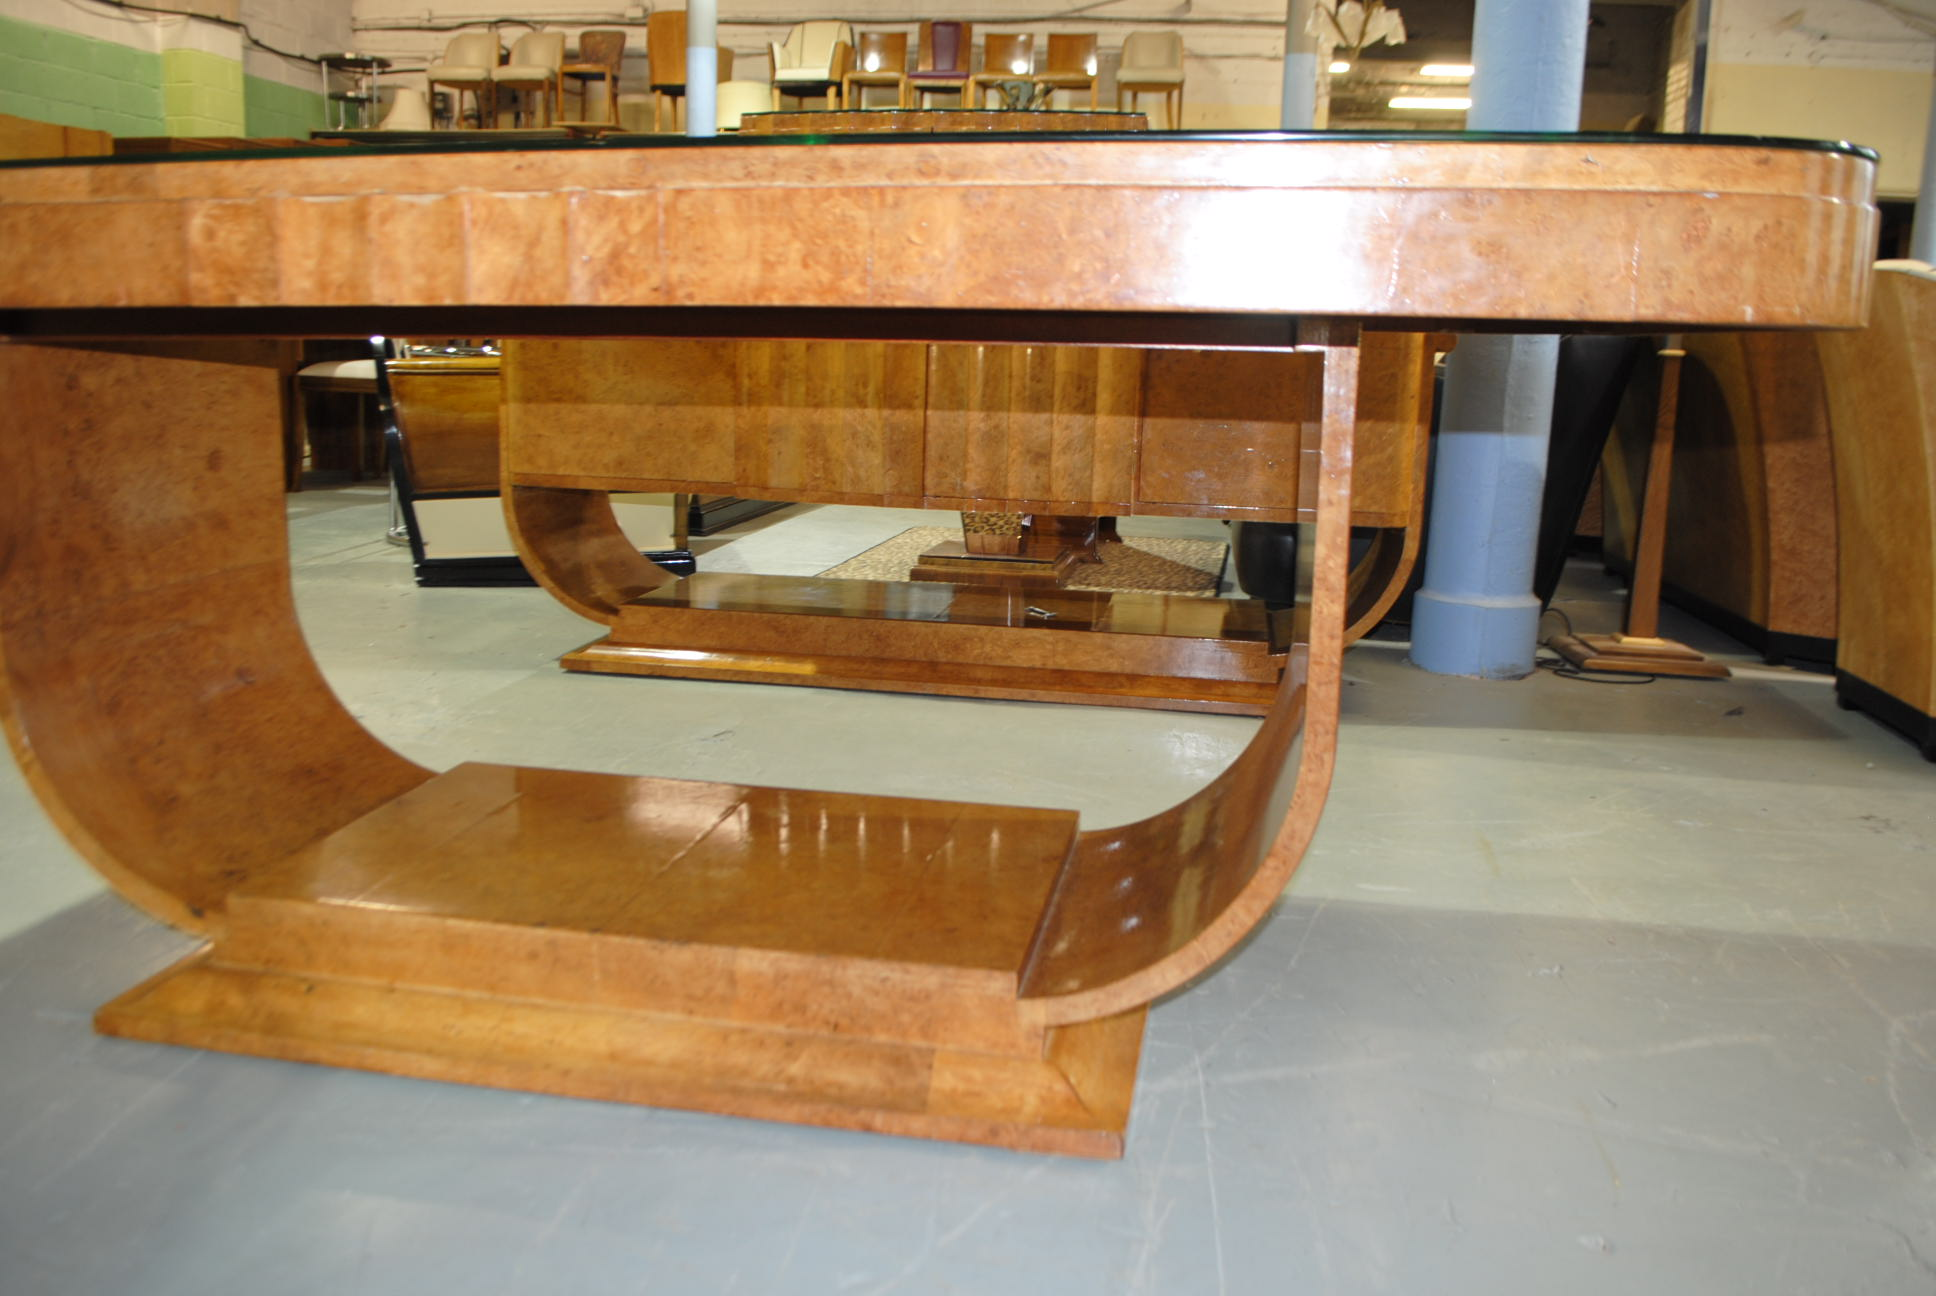 Art deco epstein dining suite and sideboard cloud 9 art deco furniture sales - Epstein art deco furniture ...